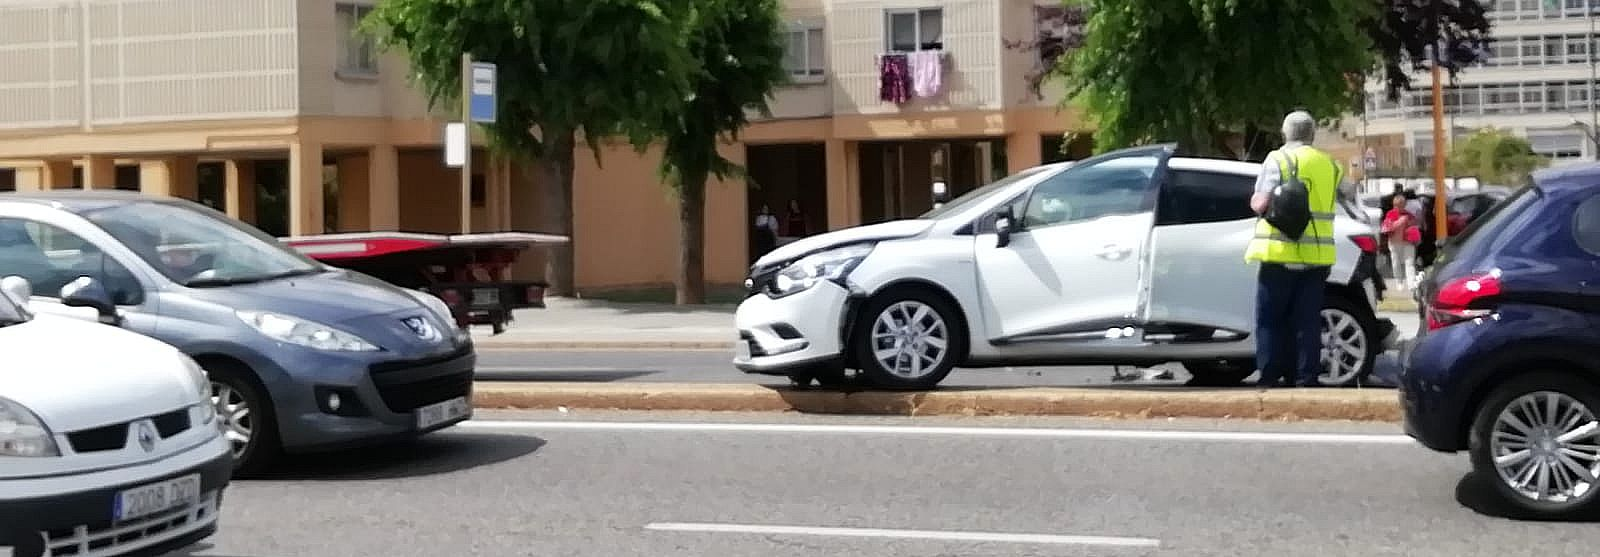 Accidente en la Avenida de Portugal